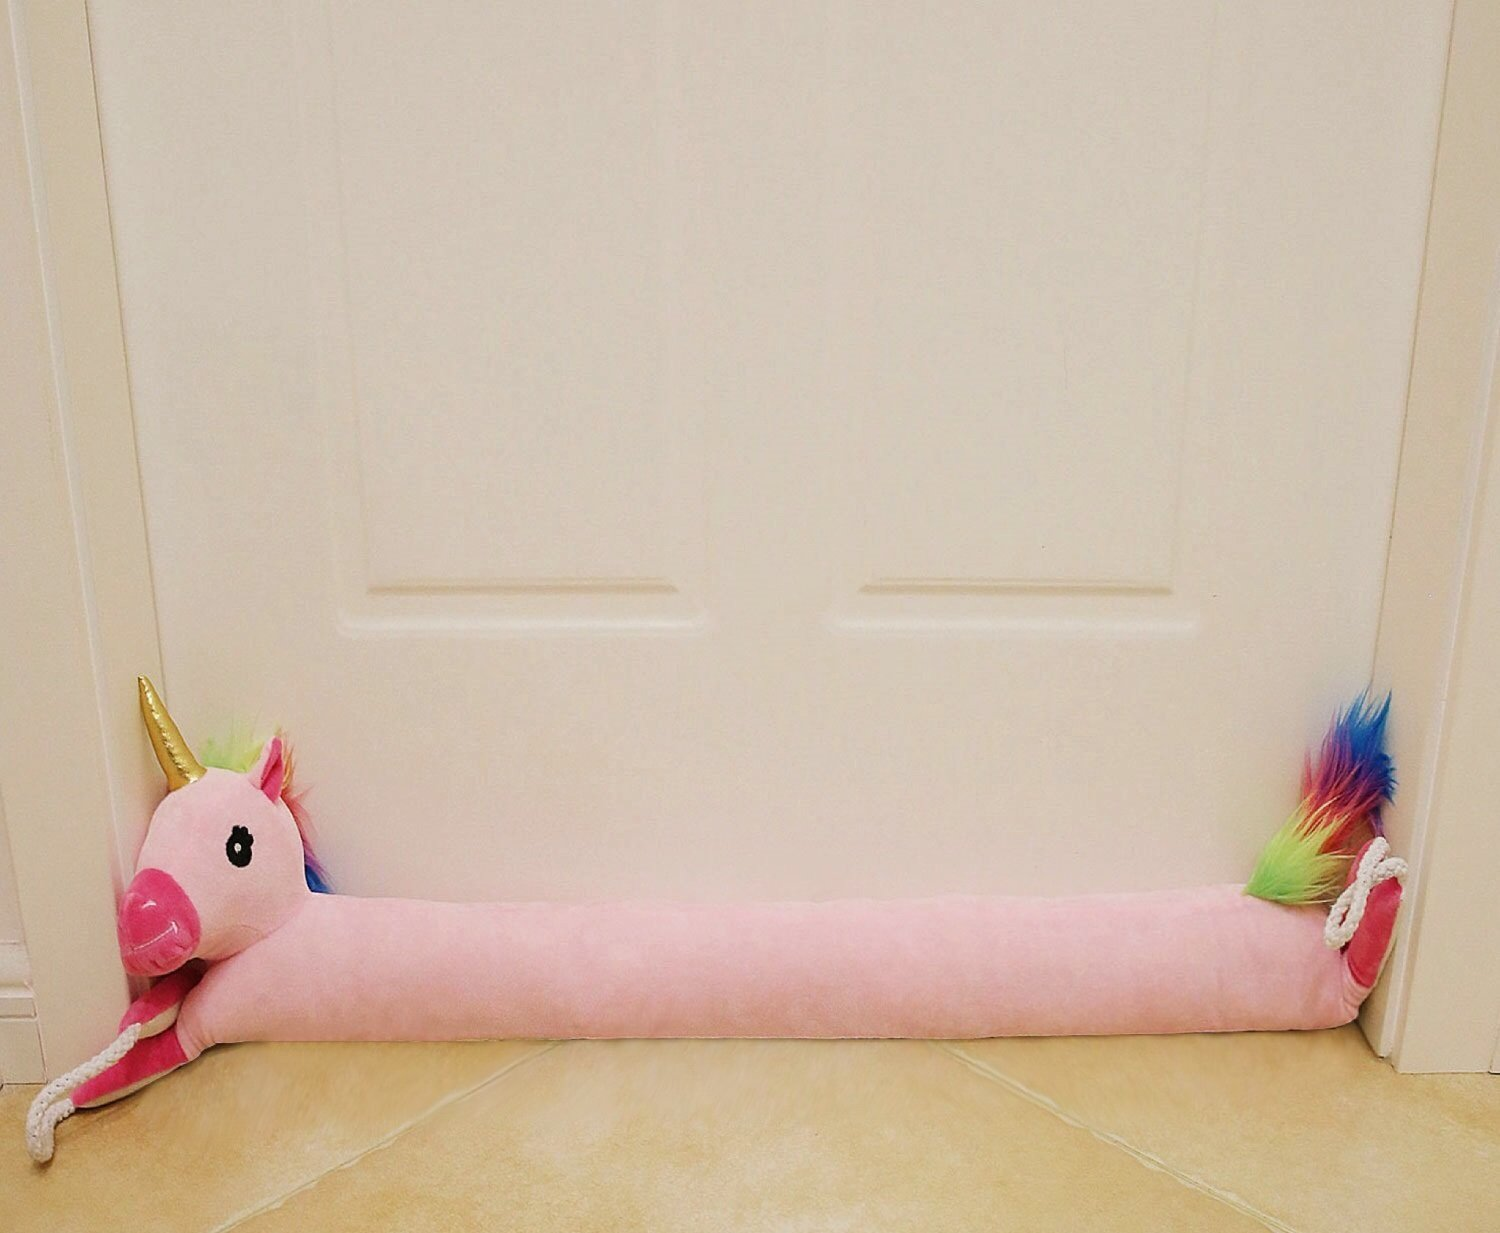 MAXTID 36'' Pink Unicorn Under Door Draft Stopper with Hanging Cord, Block Cold Heat Air and Smell Save Energy & Money | Animal Design